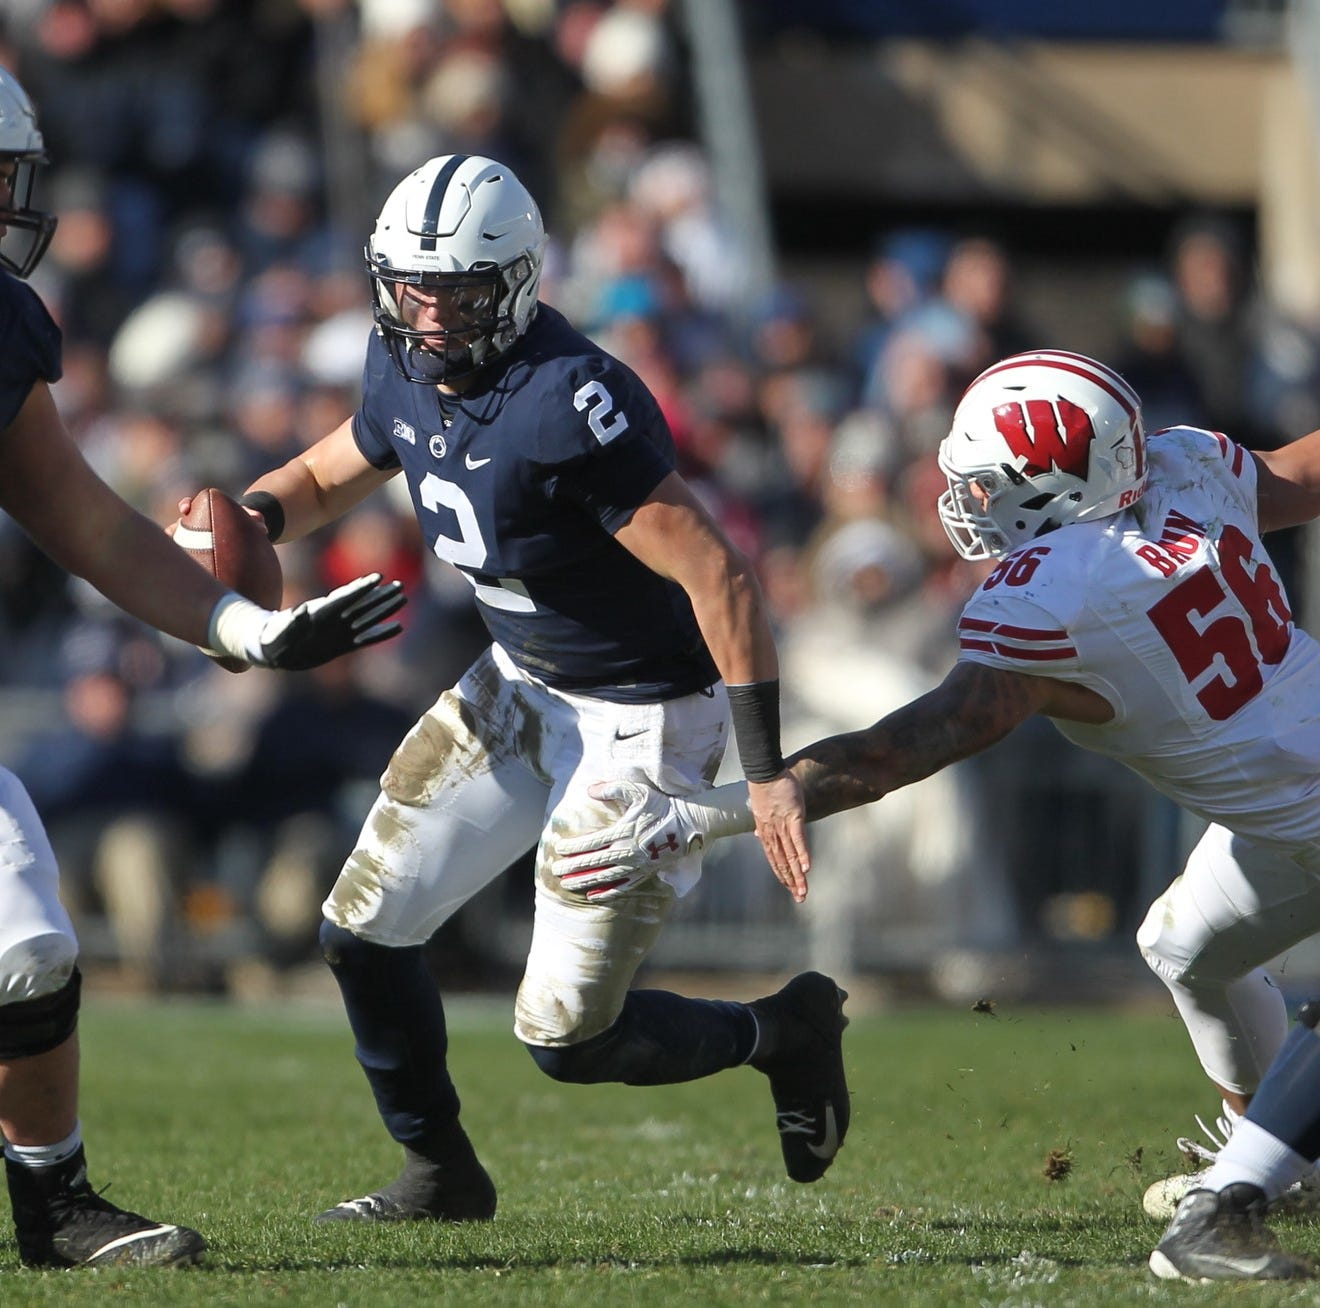 COLLINS: Penn State's convincing win over Wisconsin starts up front with offensive line